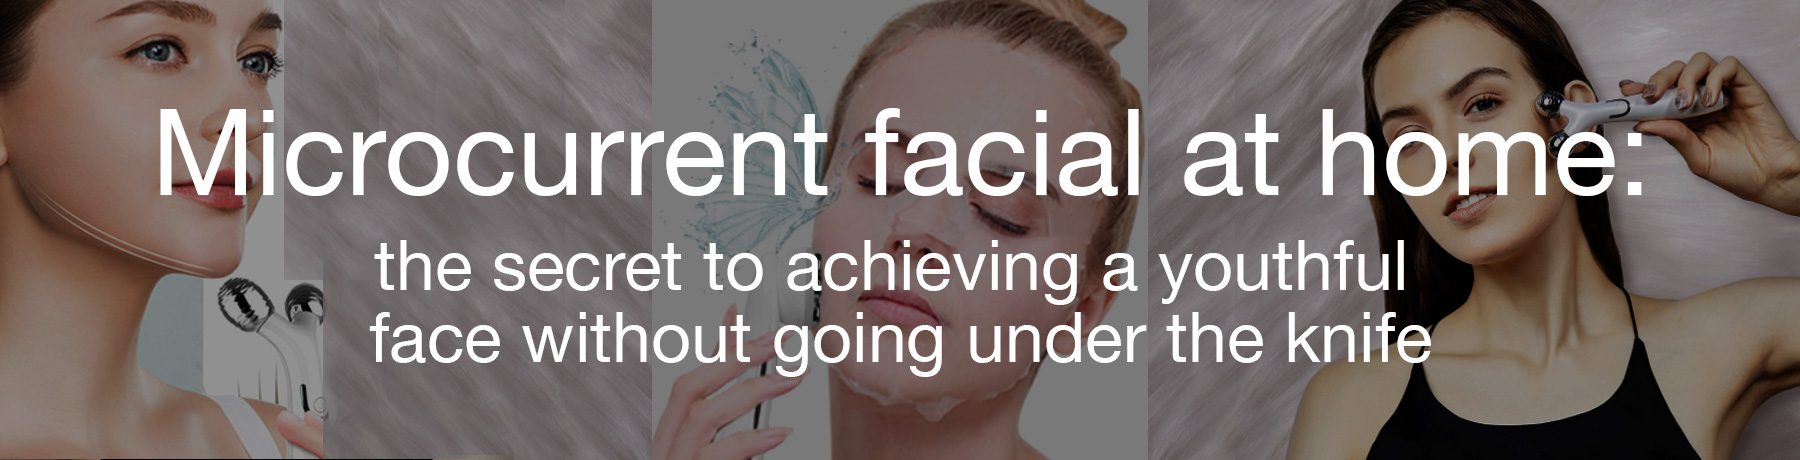 microcurrent facial at home